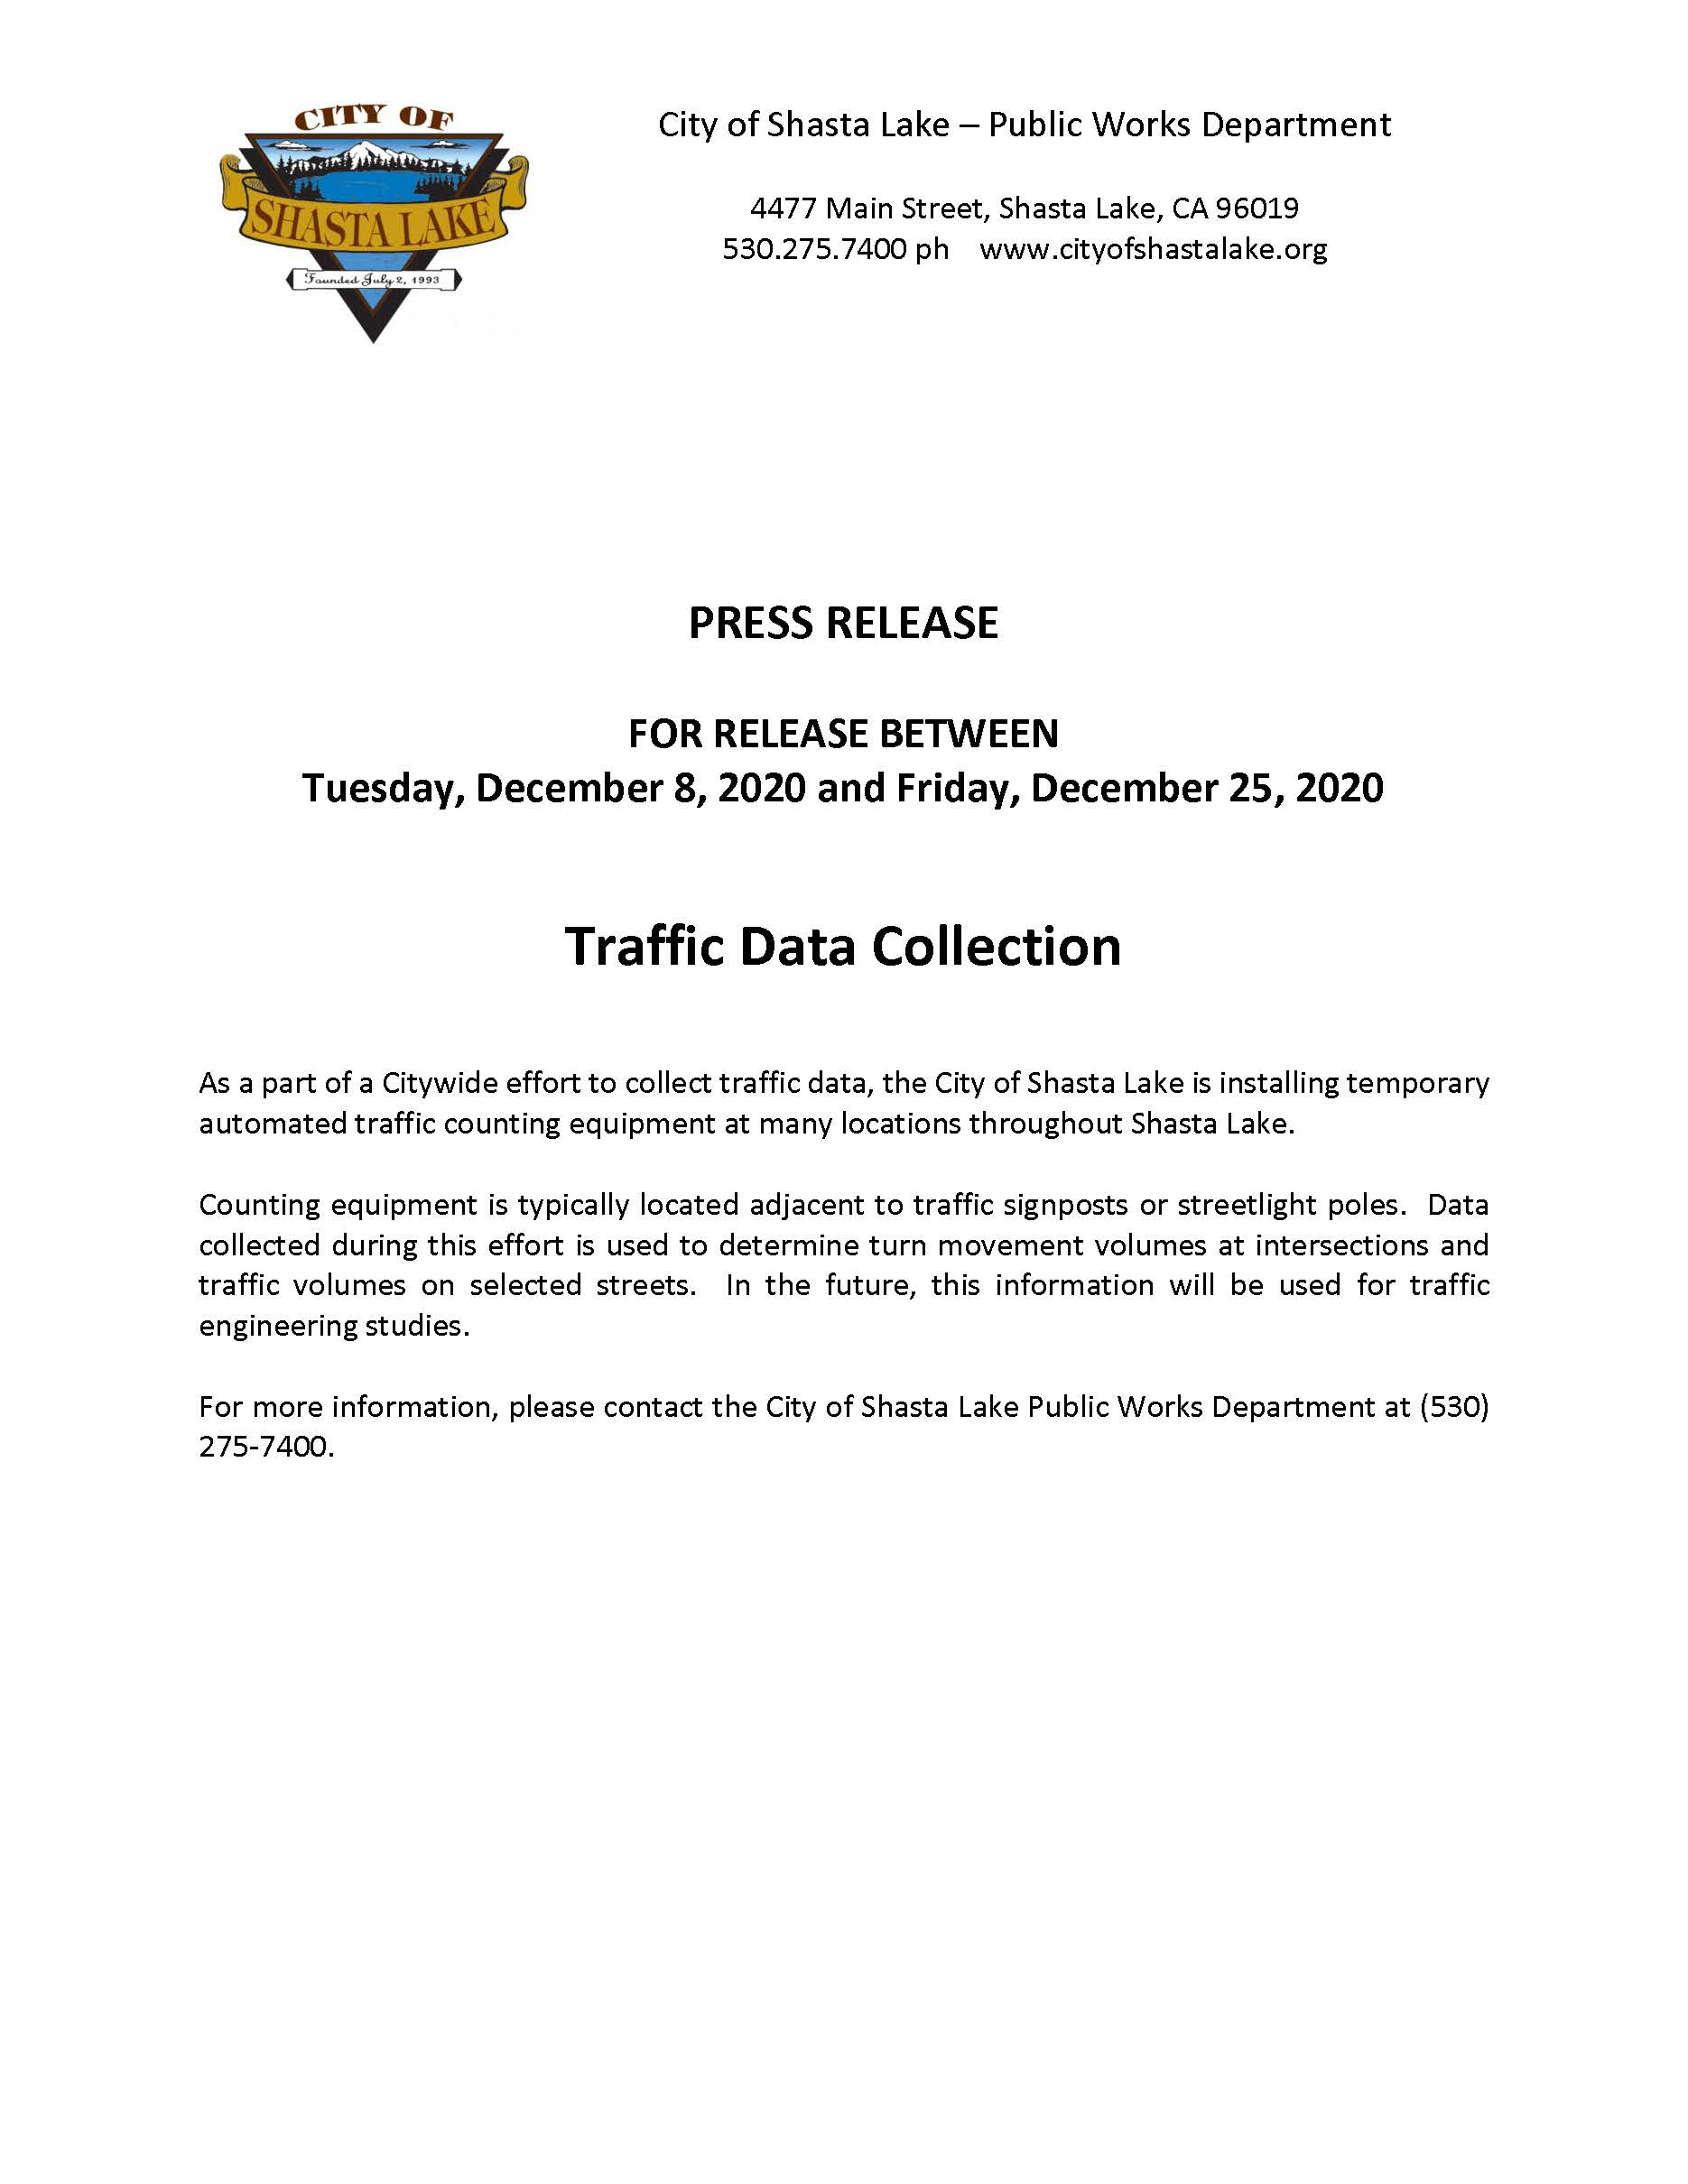 Press Release - Traffic Counts 12-08-20